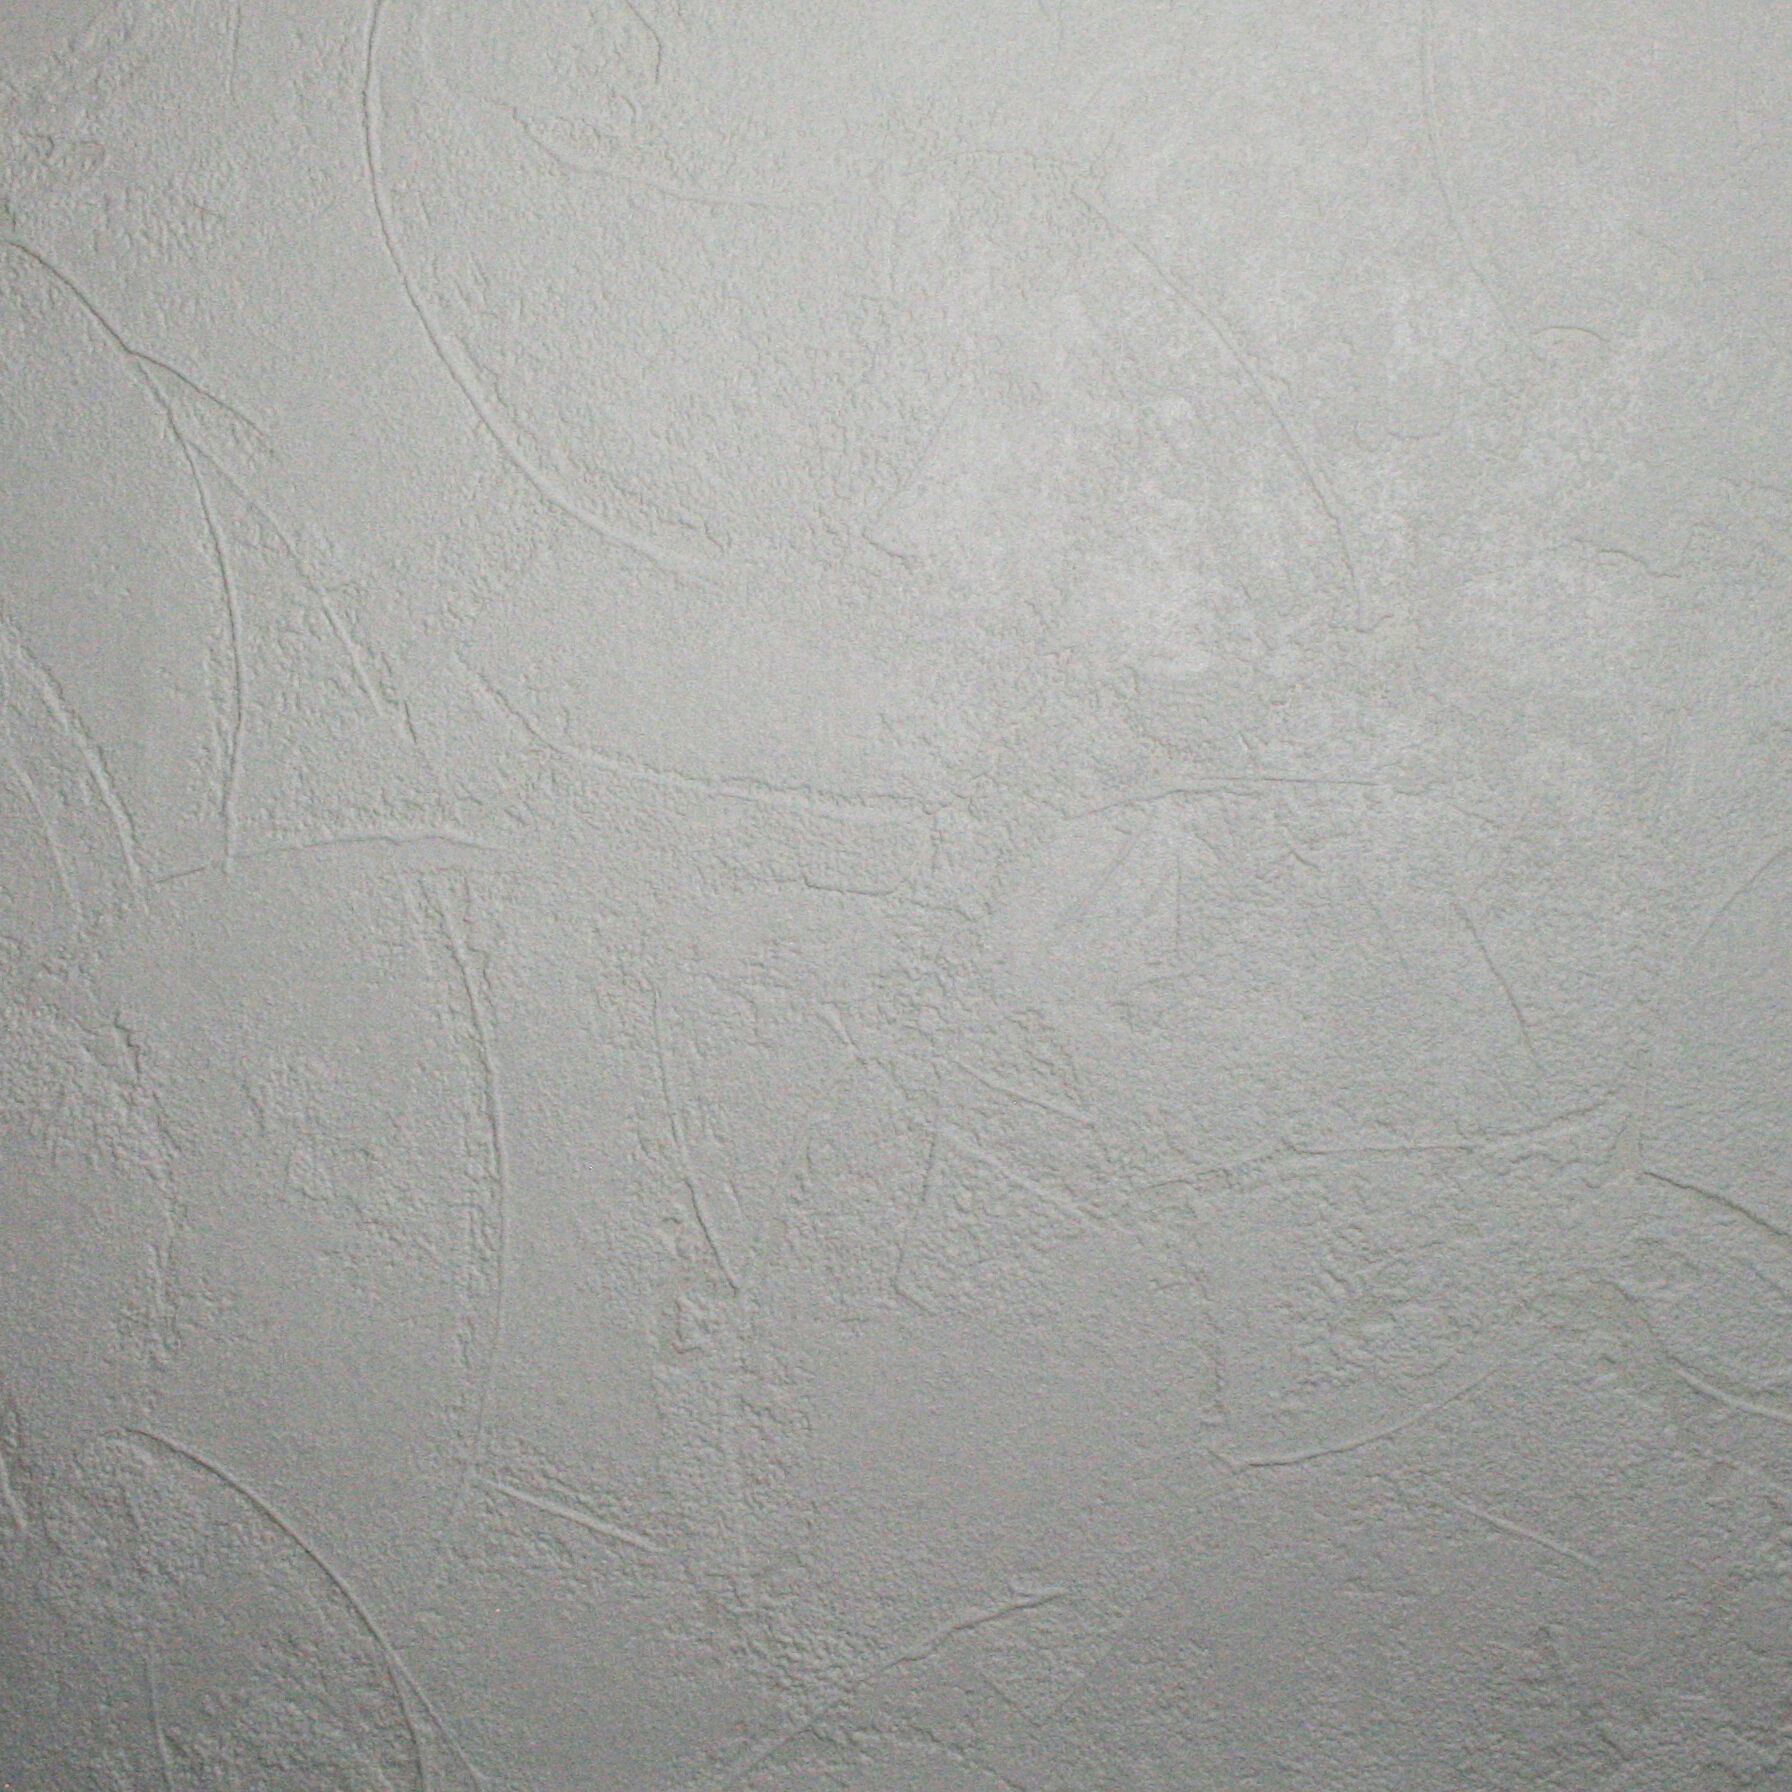 Plaster Wallpaper | Plaster Effect Wallpaper | Expanded Vinyl